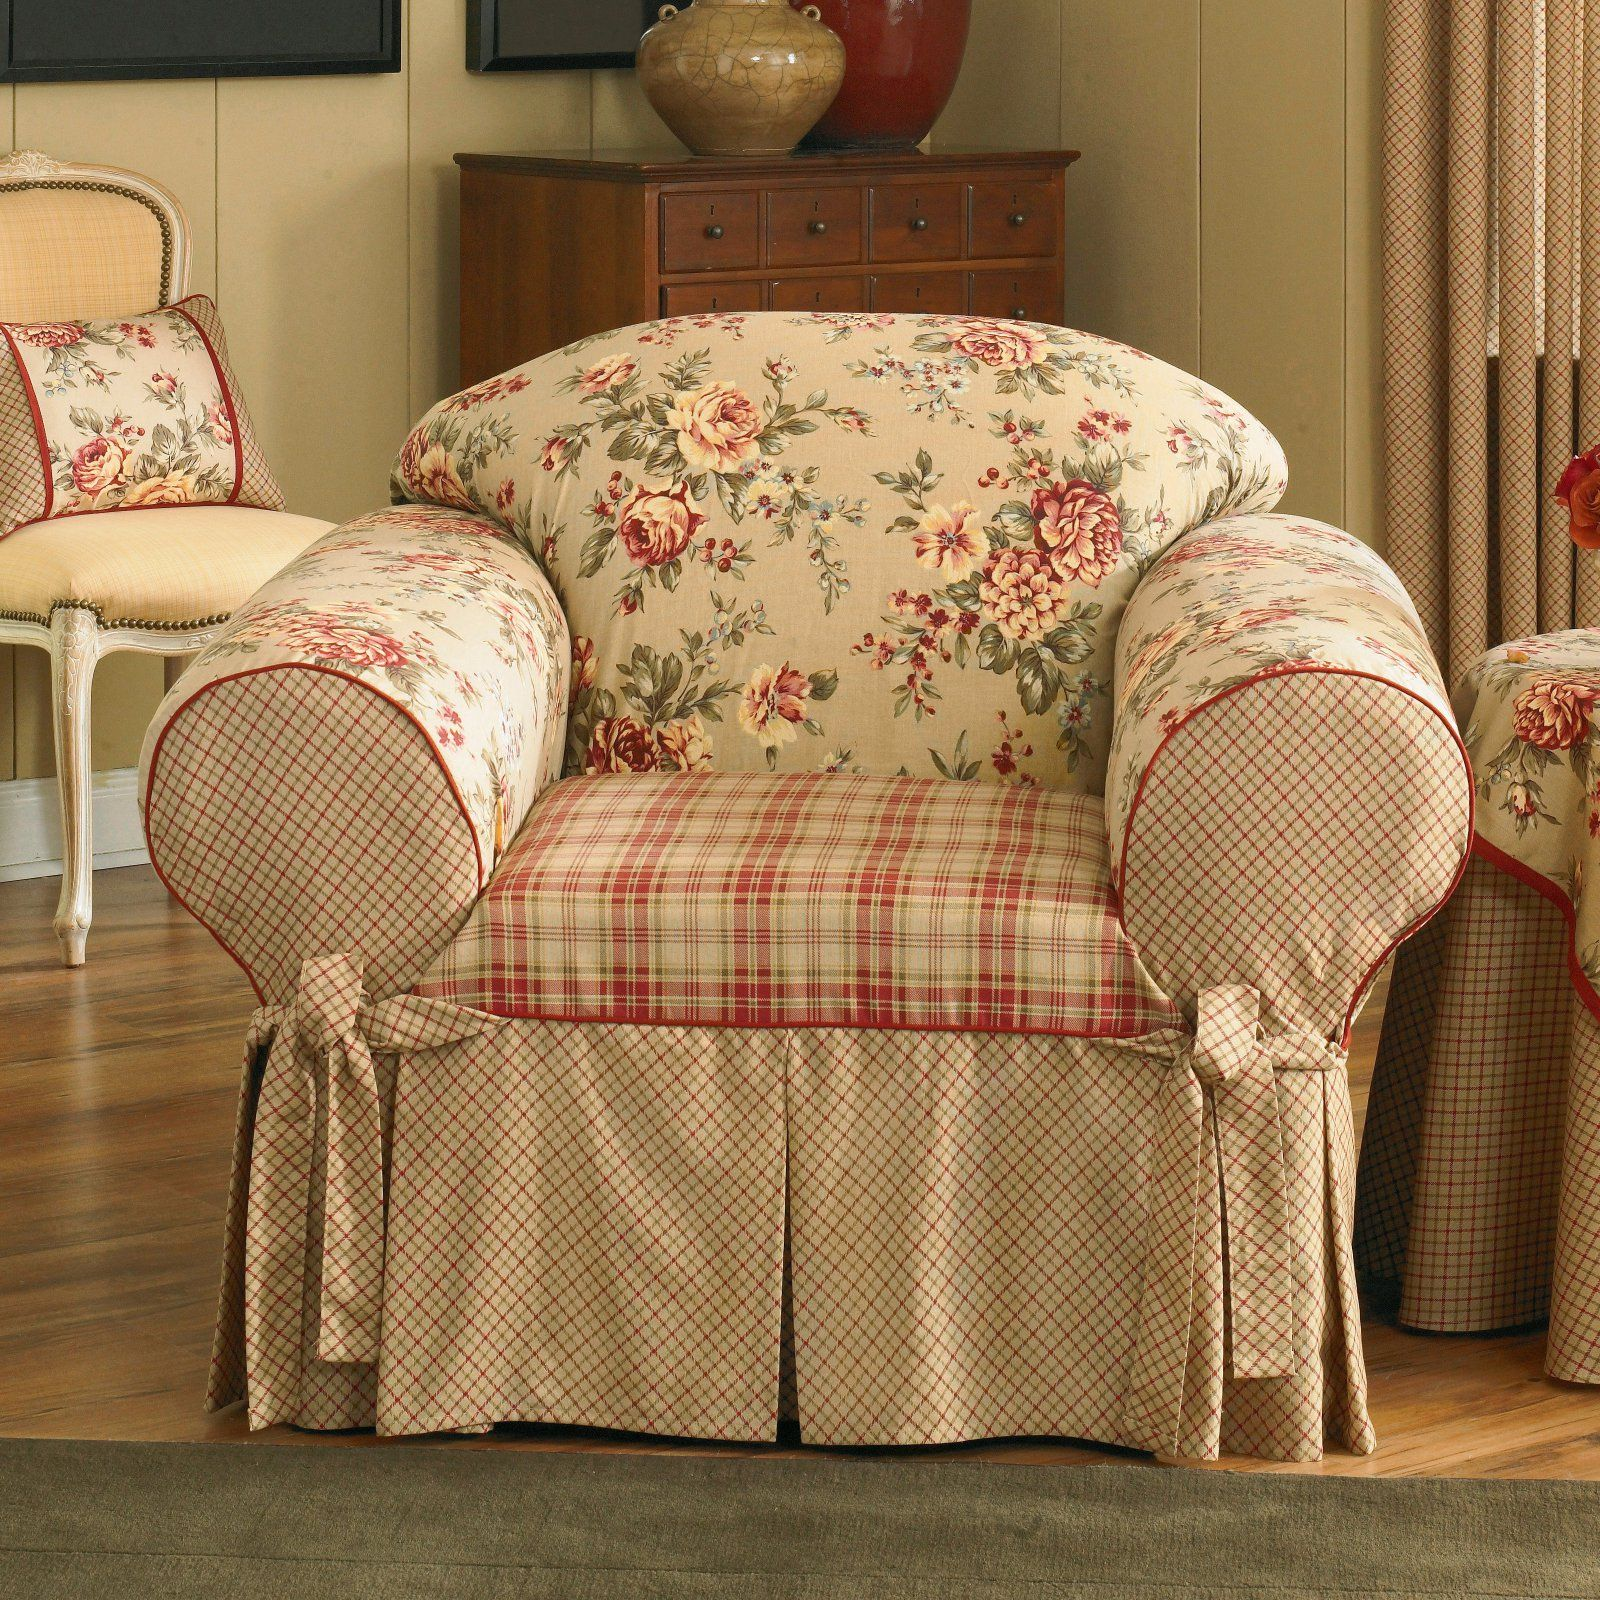 Remarkable Sure Fit Lexington Cushion Chair Slipcover In 2019 Ncnpc Chair Design For Home Ncnpcorg